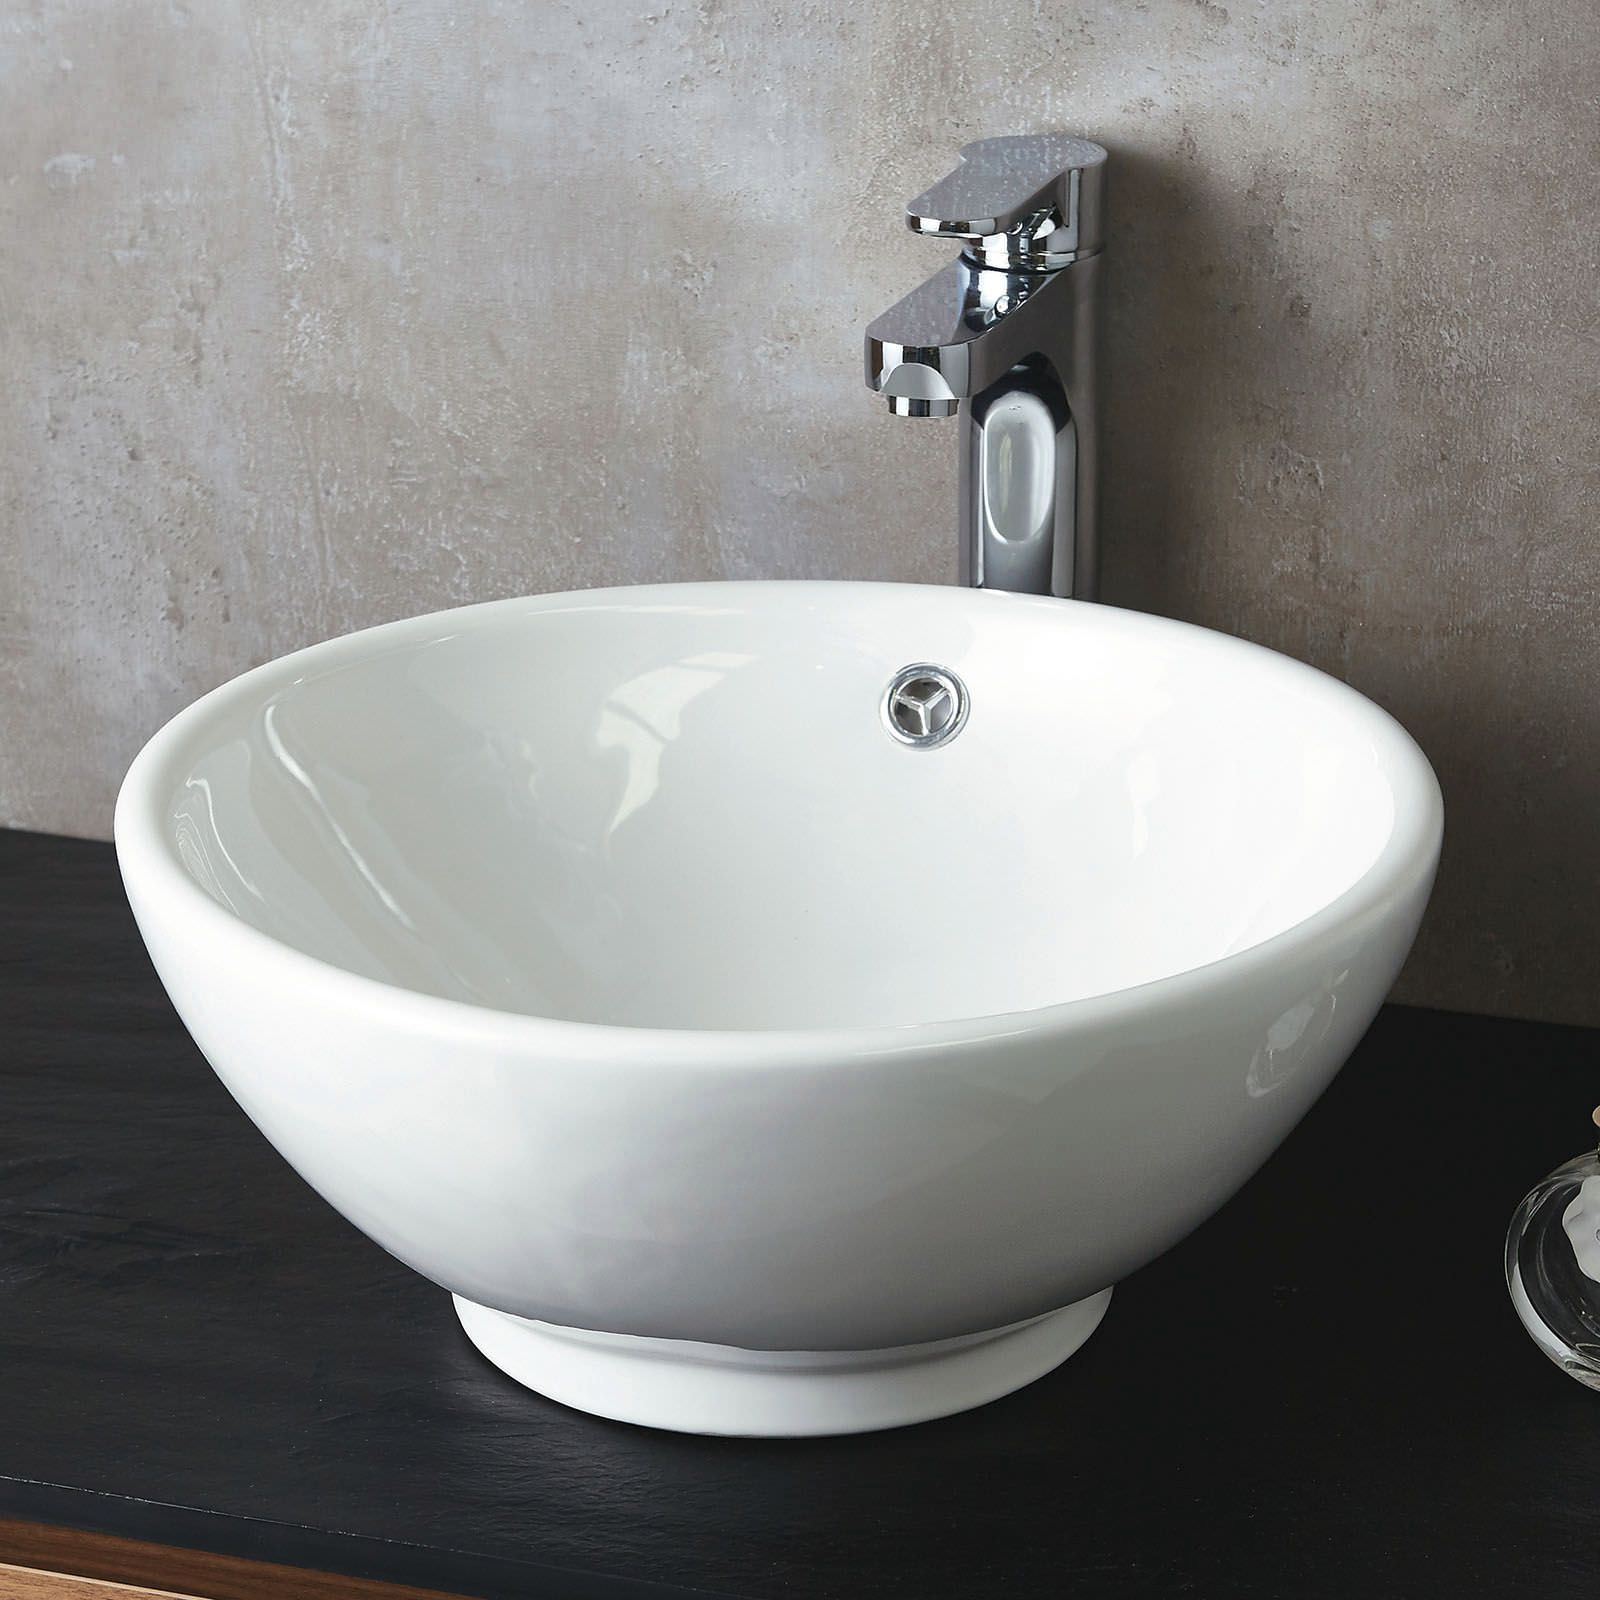 Round Counter Top: Phoenix Round 400mm Counter Top Basin